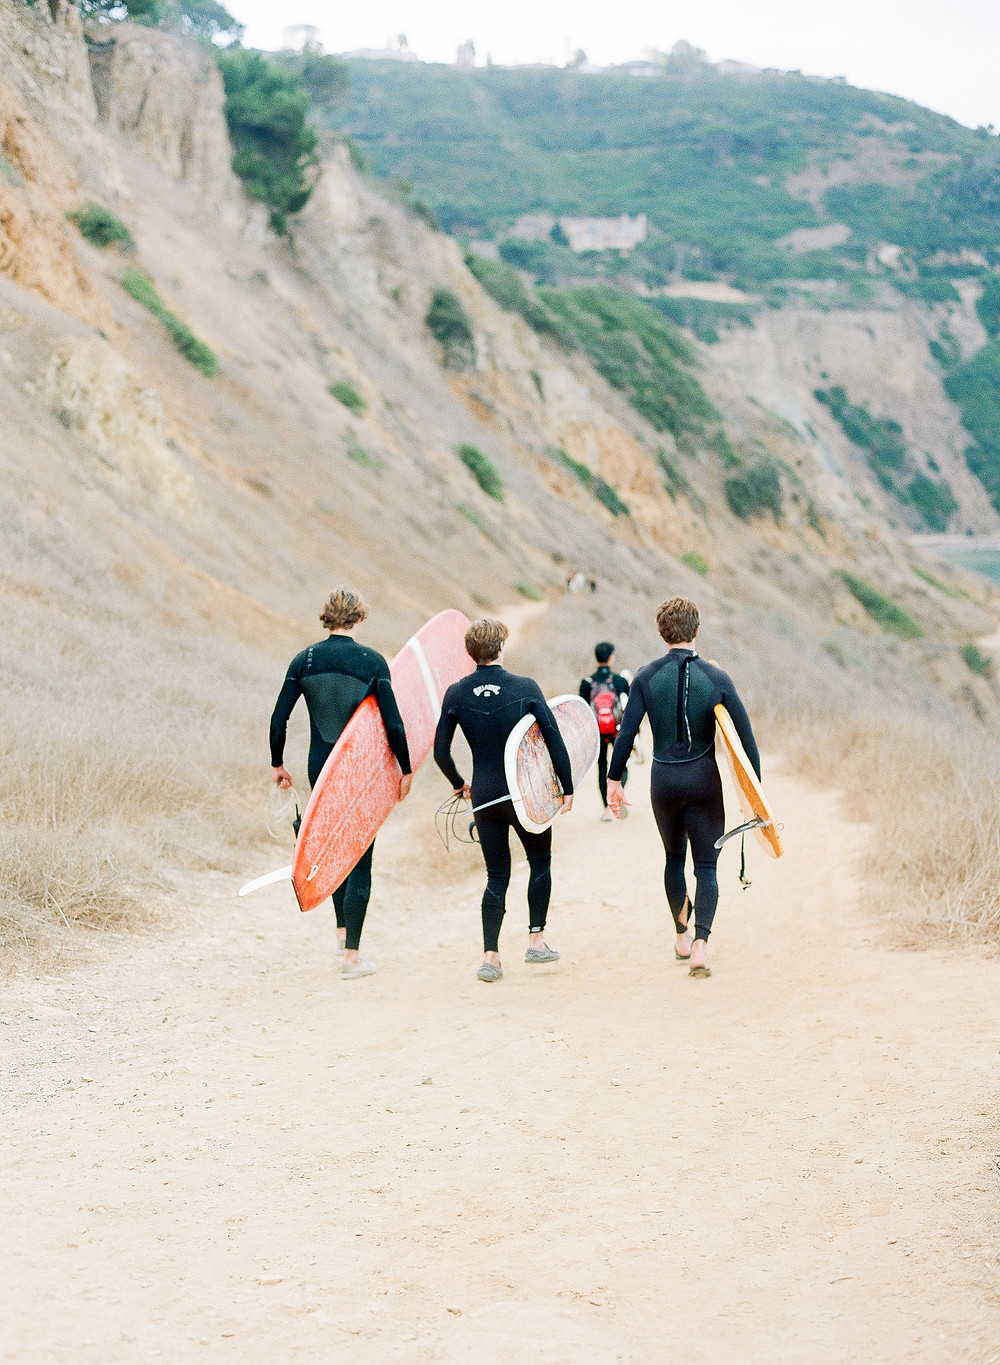 Surfers in Bluff Cove Palos Verdes California